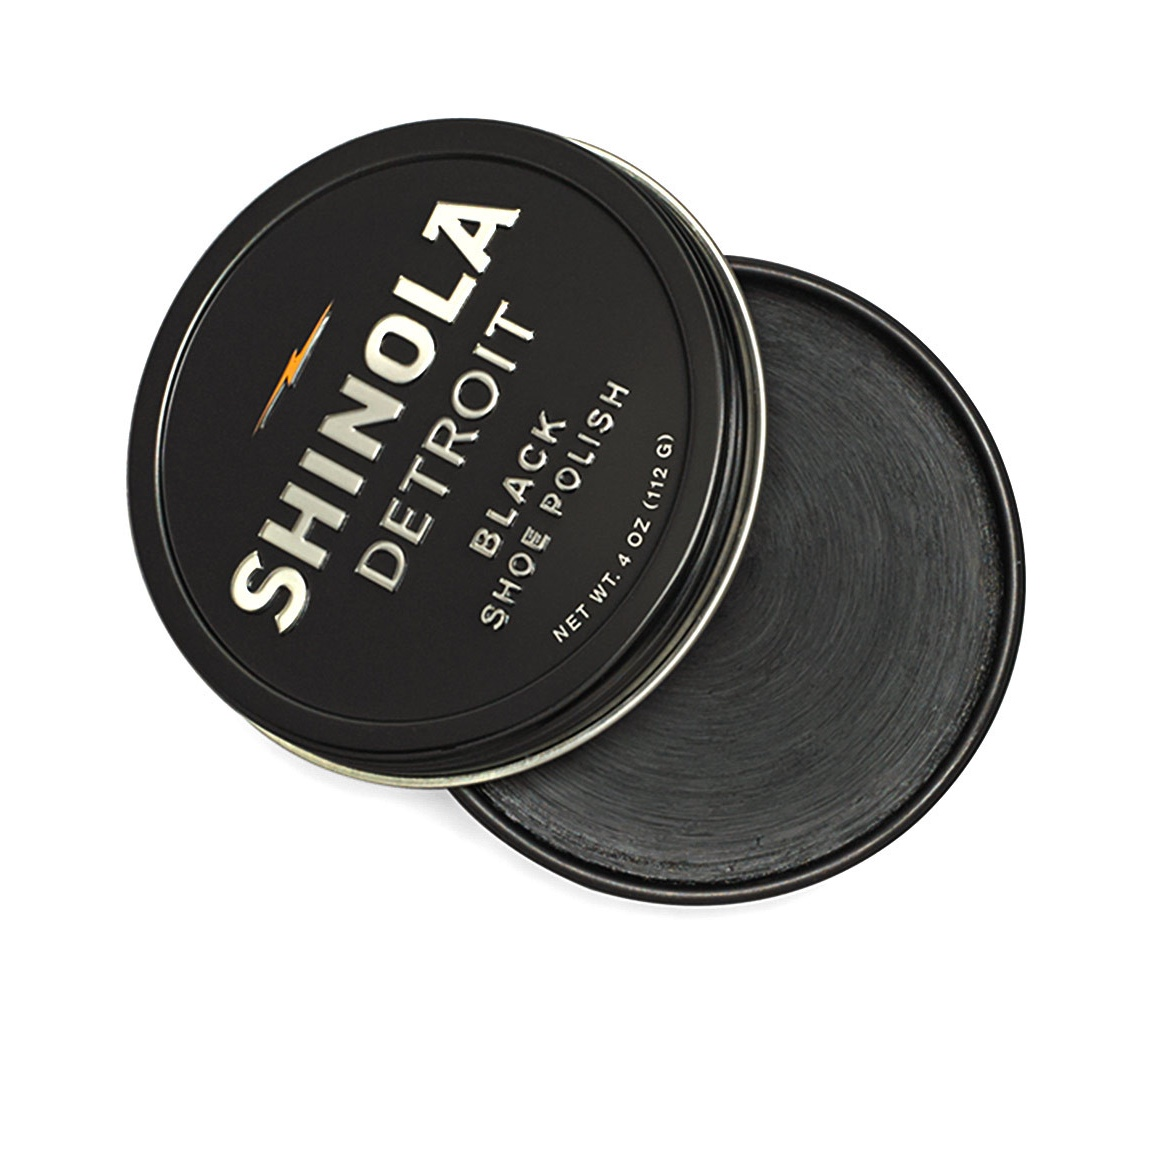 Shinola shoe polish. Produced in small batches in Chicago by C.A. Zoes Manufacturing. Image© Shinola 2016.